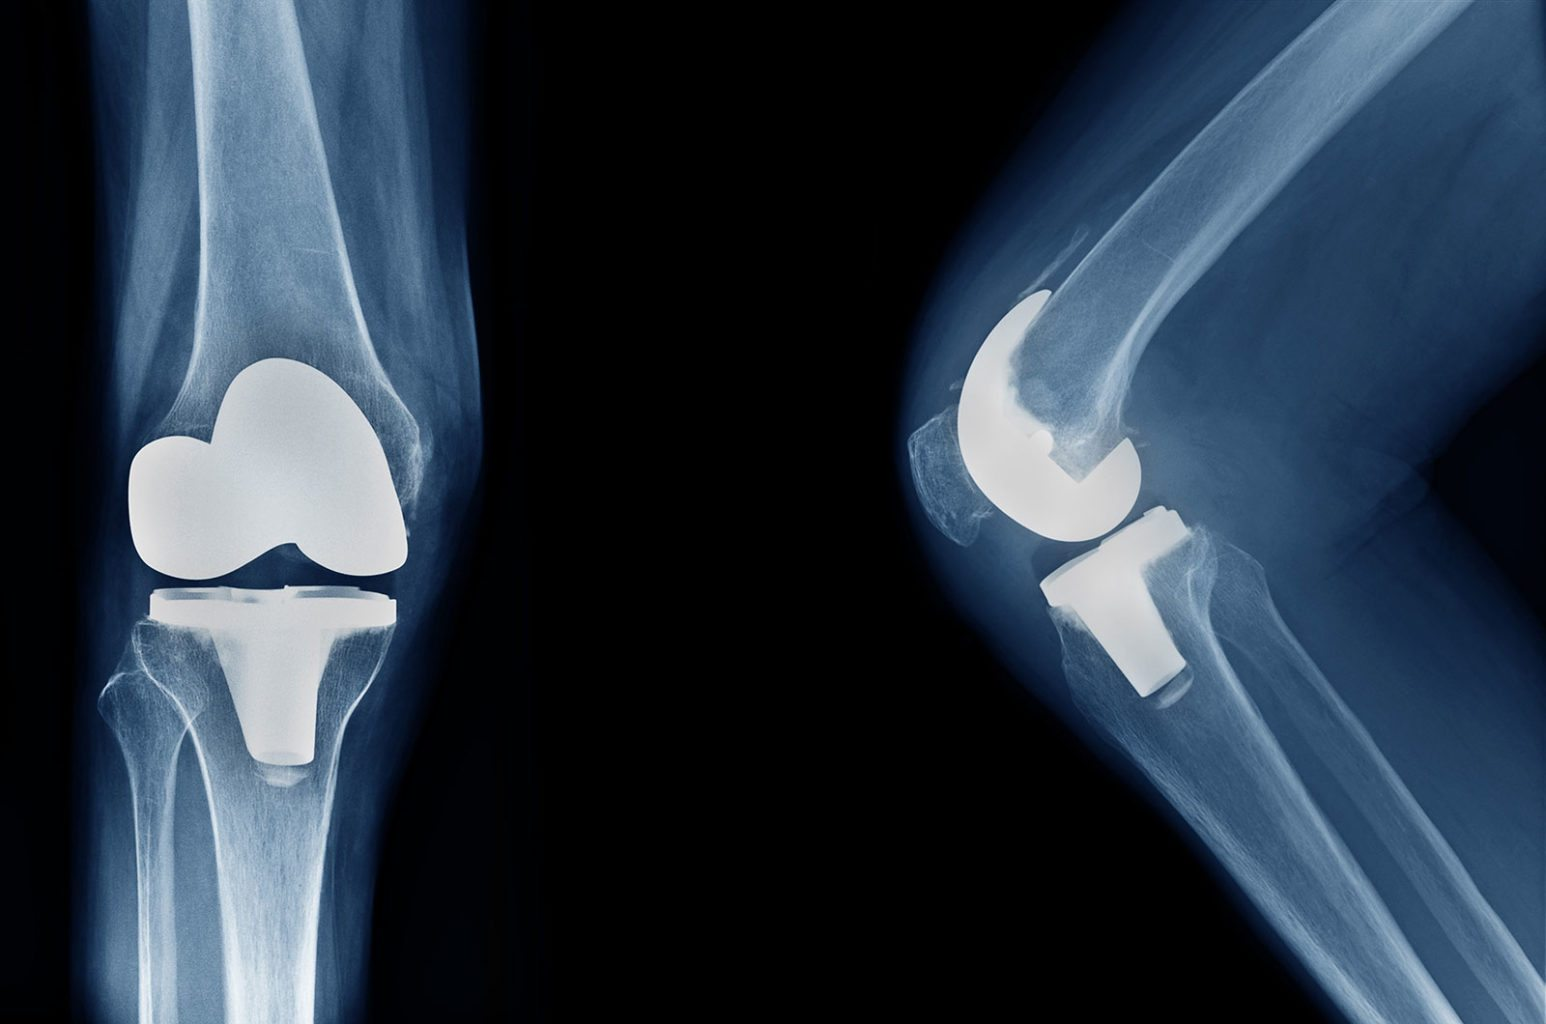 Knee osteoarthritis: Blacks in U.S. lose quality of life due knee replacements